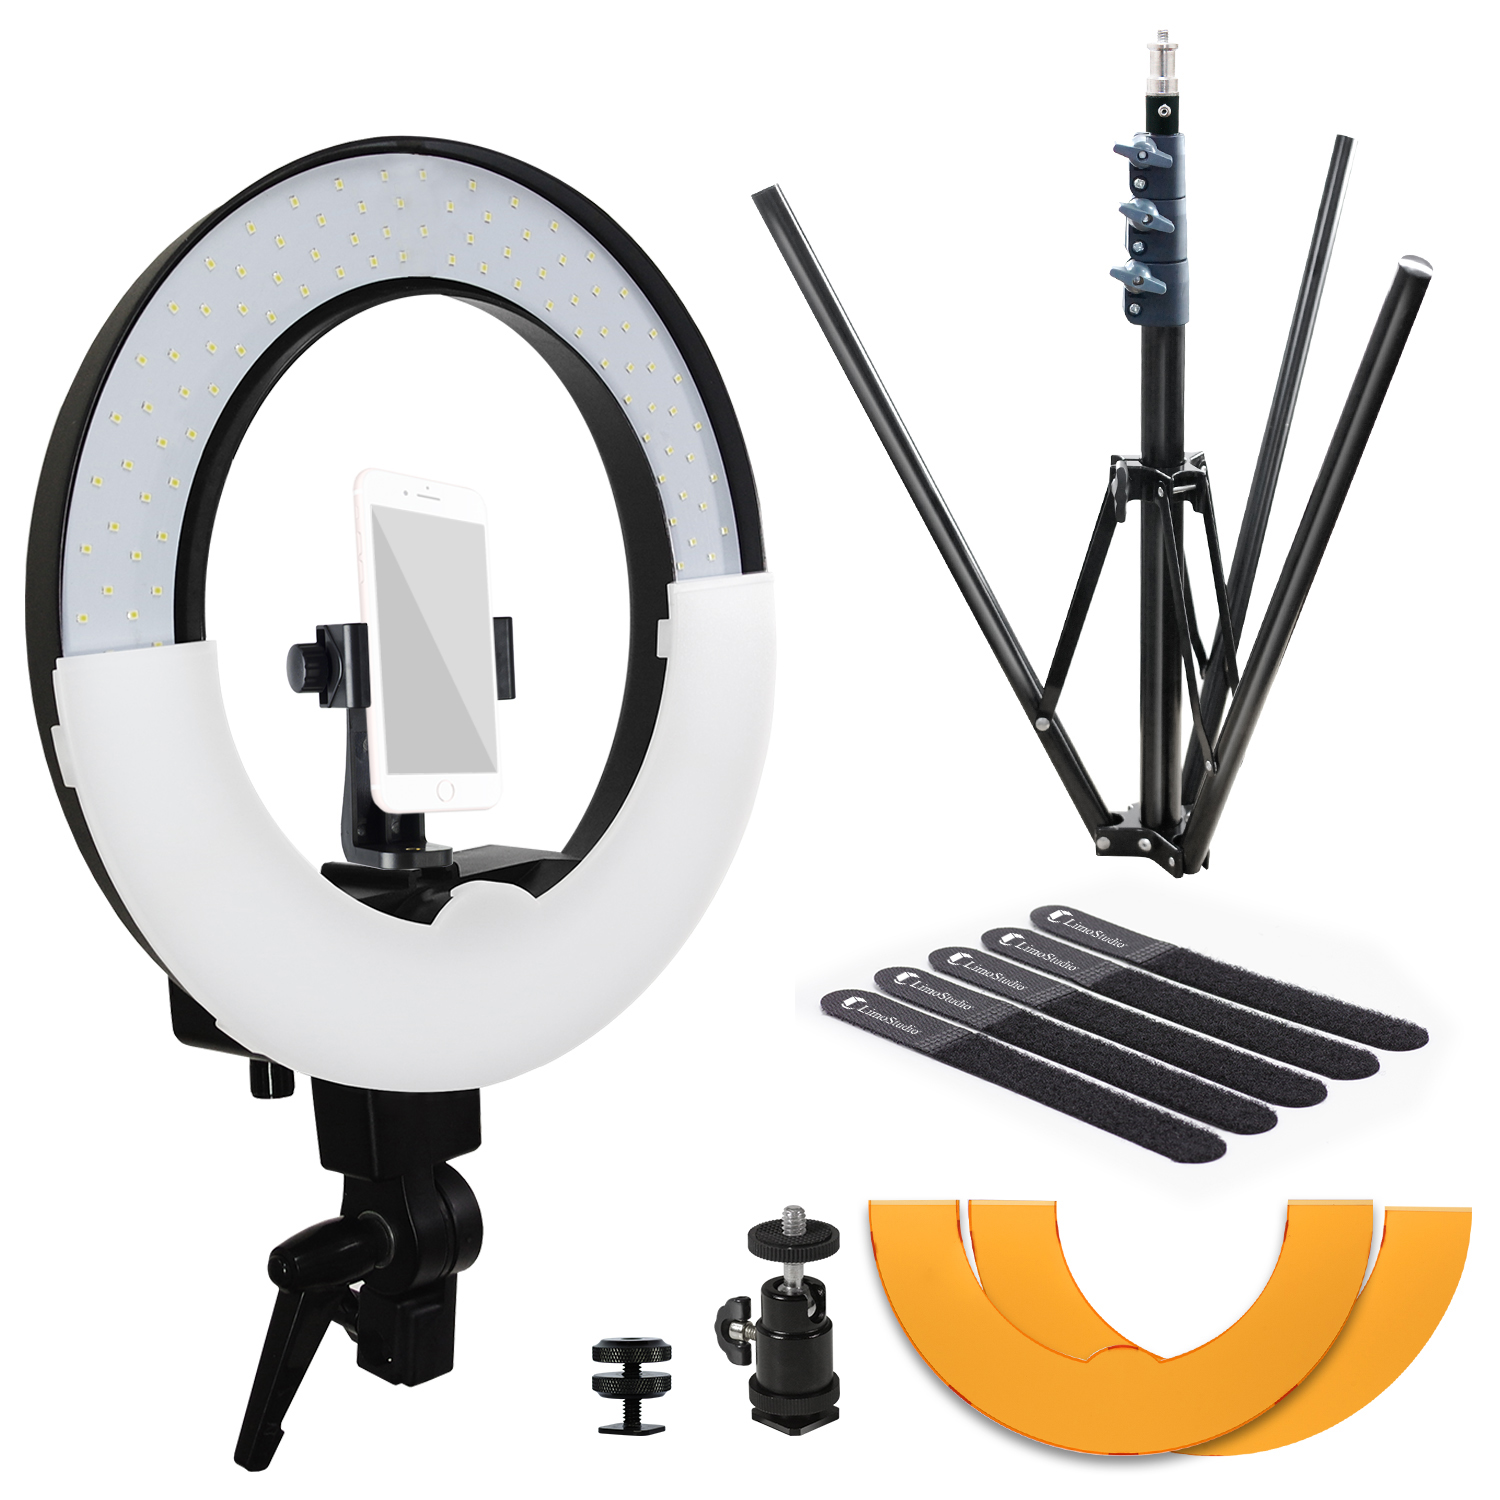 Loadstone Studio 14 inch Diameter LED Ring Light with Heavy Duty Tripod Stand, Secure Phone Mount, 1/4 inch Standard Hot Shoe Mount Adapter Holder for Professional at Home Beauty Shoots, , WMLS4534